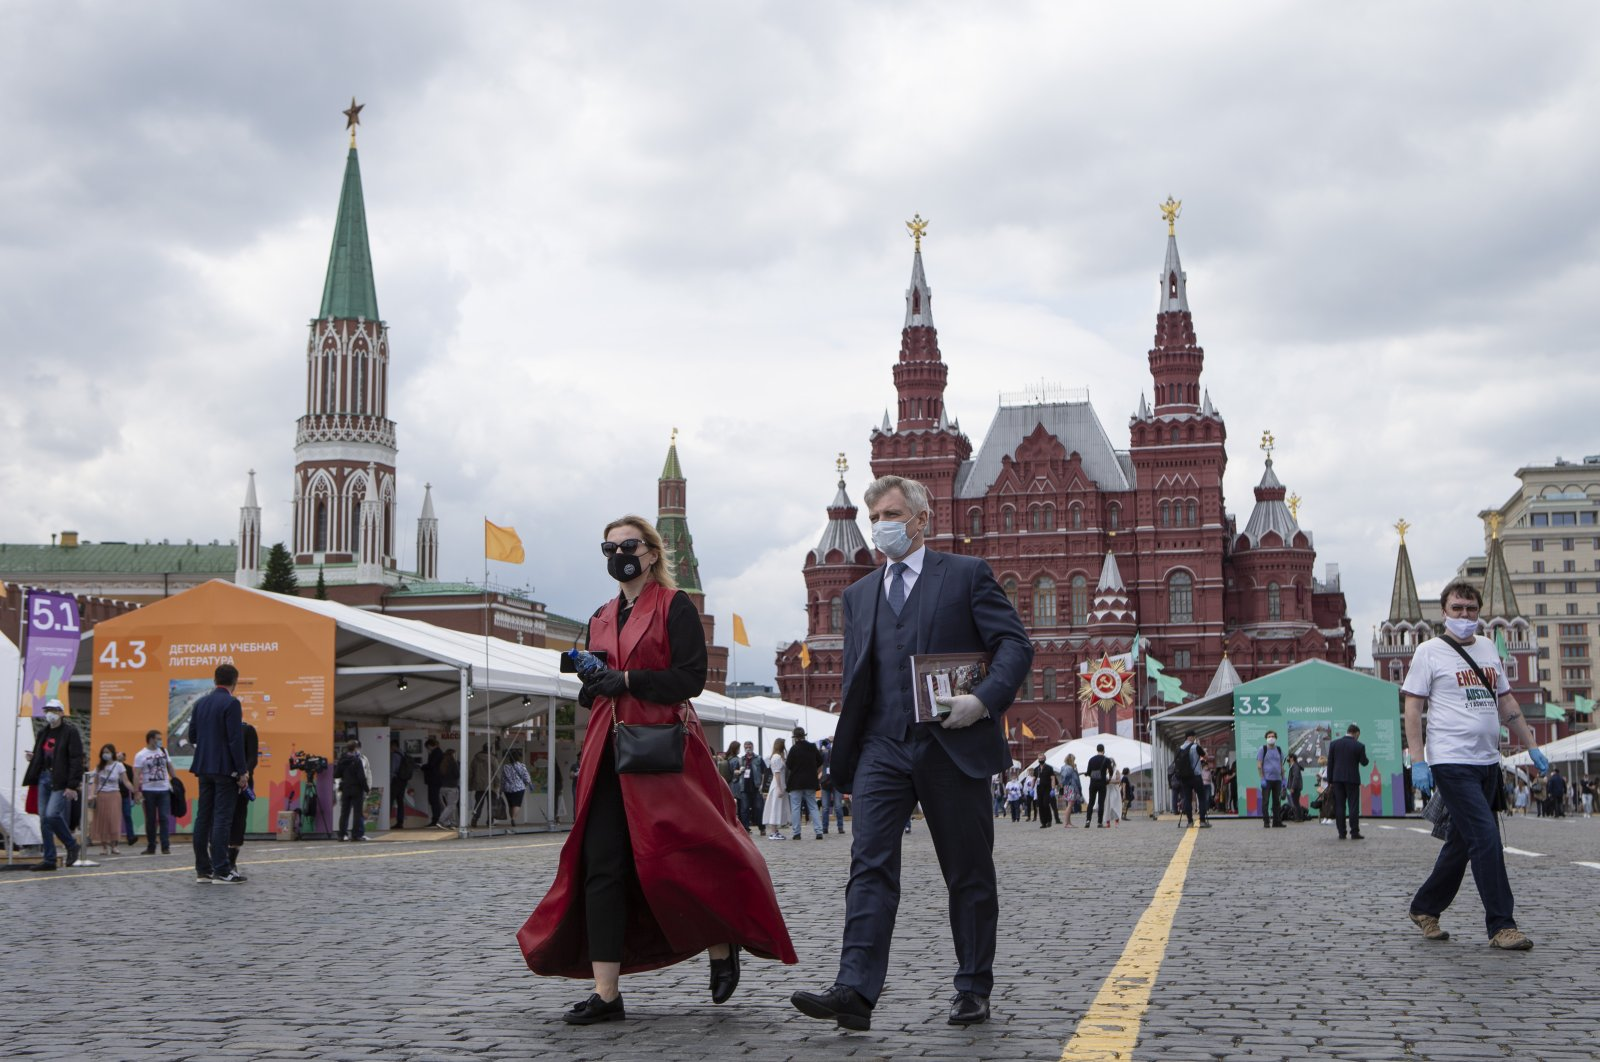 People wearing face masks to protect against the coronavirus walk at an outdoor book market set up in the Red Square with a historical museum in the background, Moscow, Russia, June 6, 2020. (AP Photo)